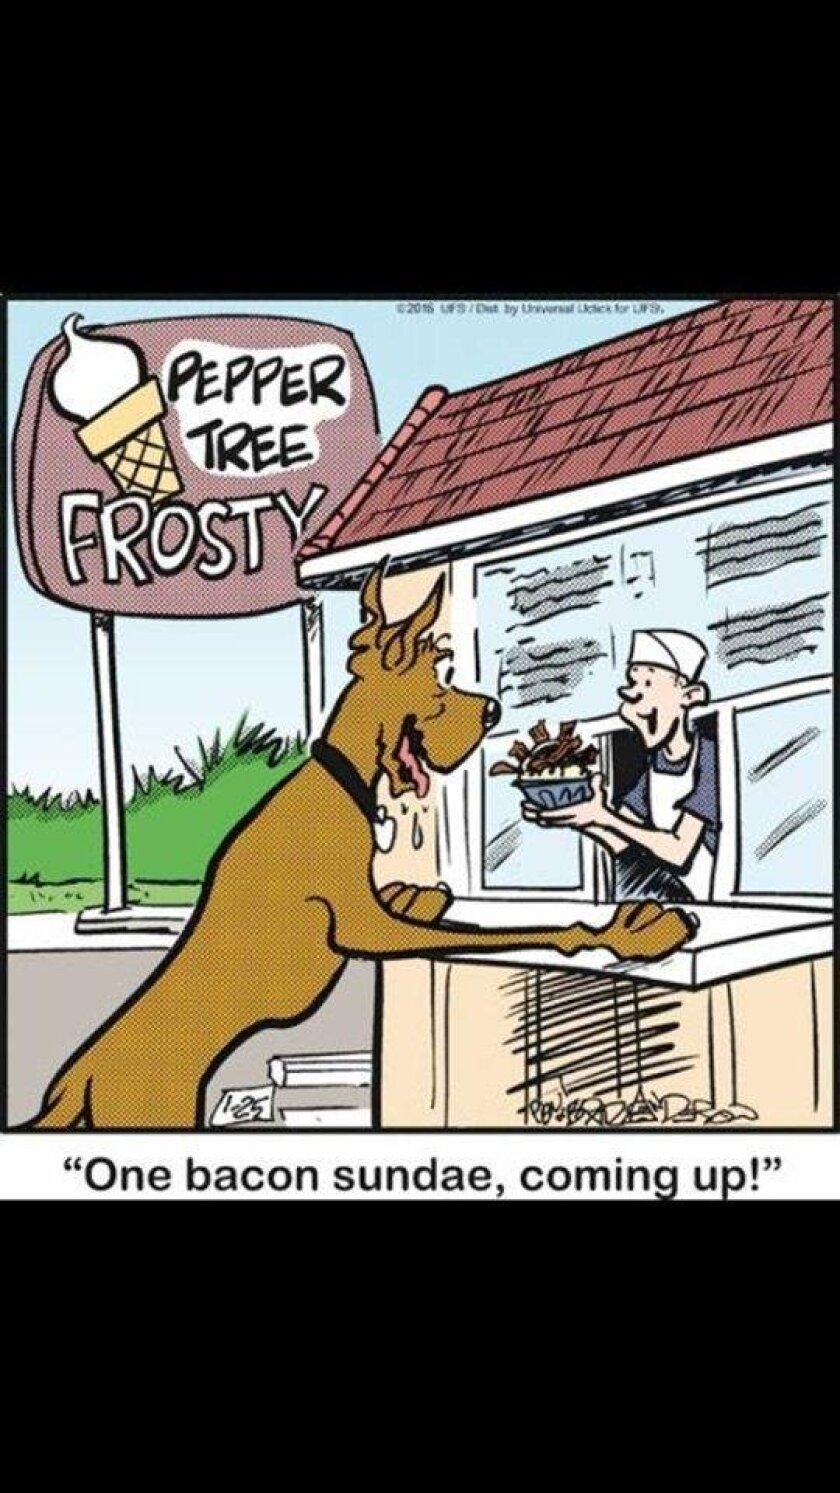 """Vista's Pepper Tree Frosty shop was featured in Monday's """"Marmaduke"""" comic panel. In this comic published Jan. 25, the caption reads """"One bacon sundae, coming up!"""""""